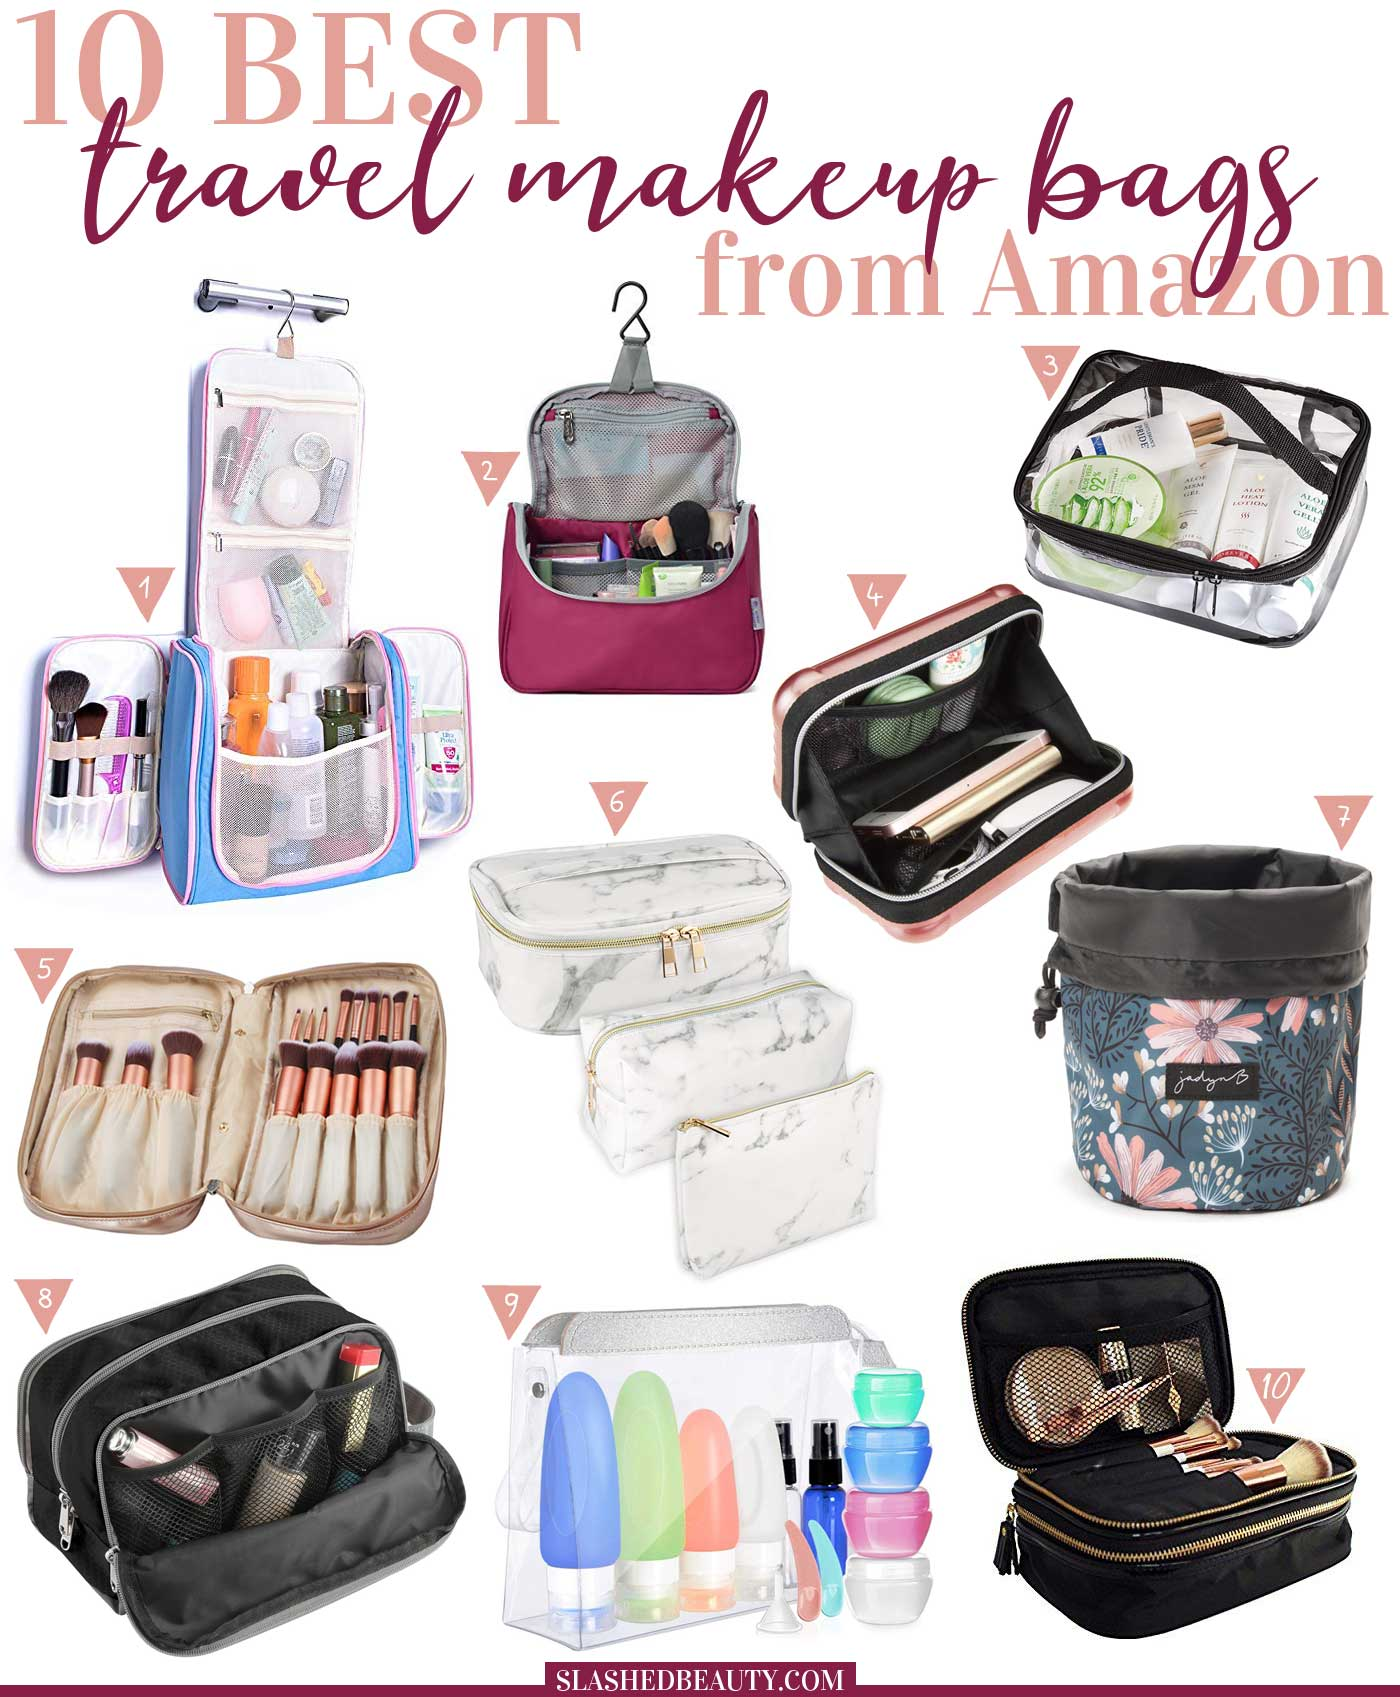 10 Best Travel Makeup Bags to Buy on Amazon | Packing Makeup for Travel | Travel Beauty Bags from Amazon | Slashed Beauty